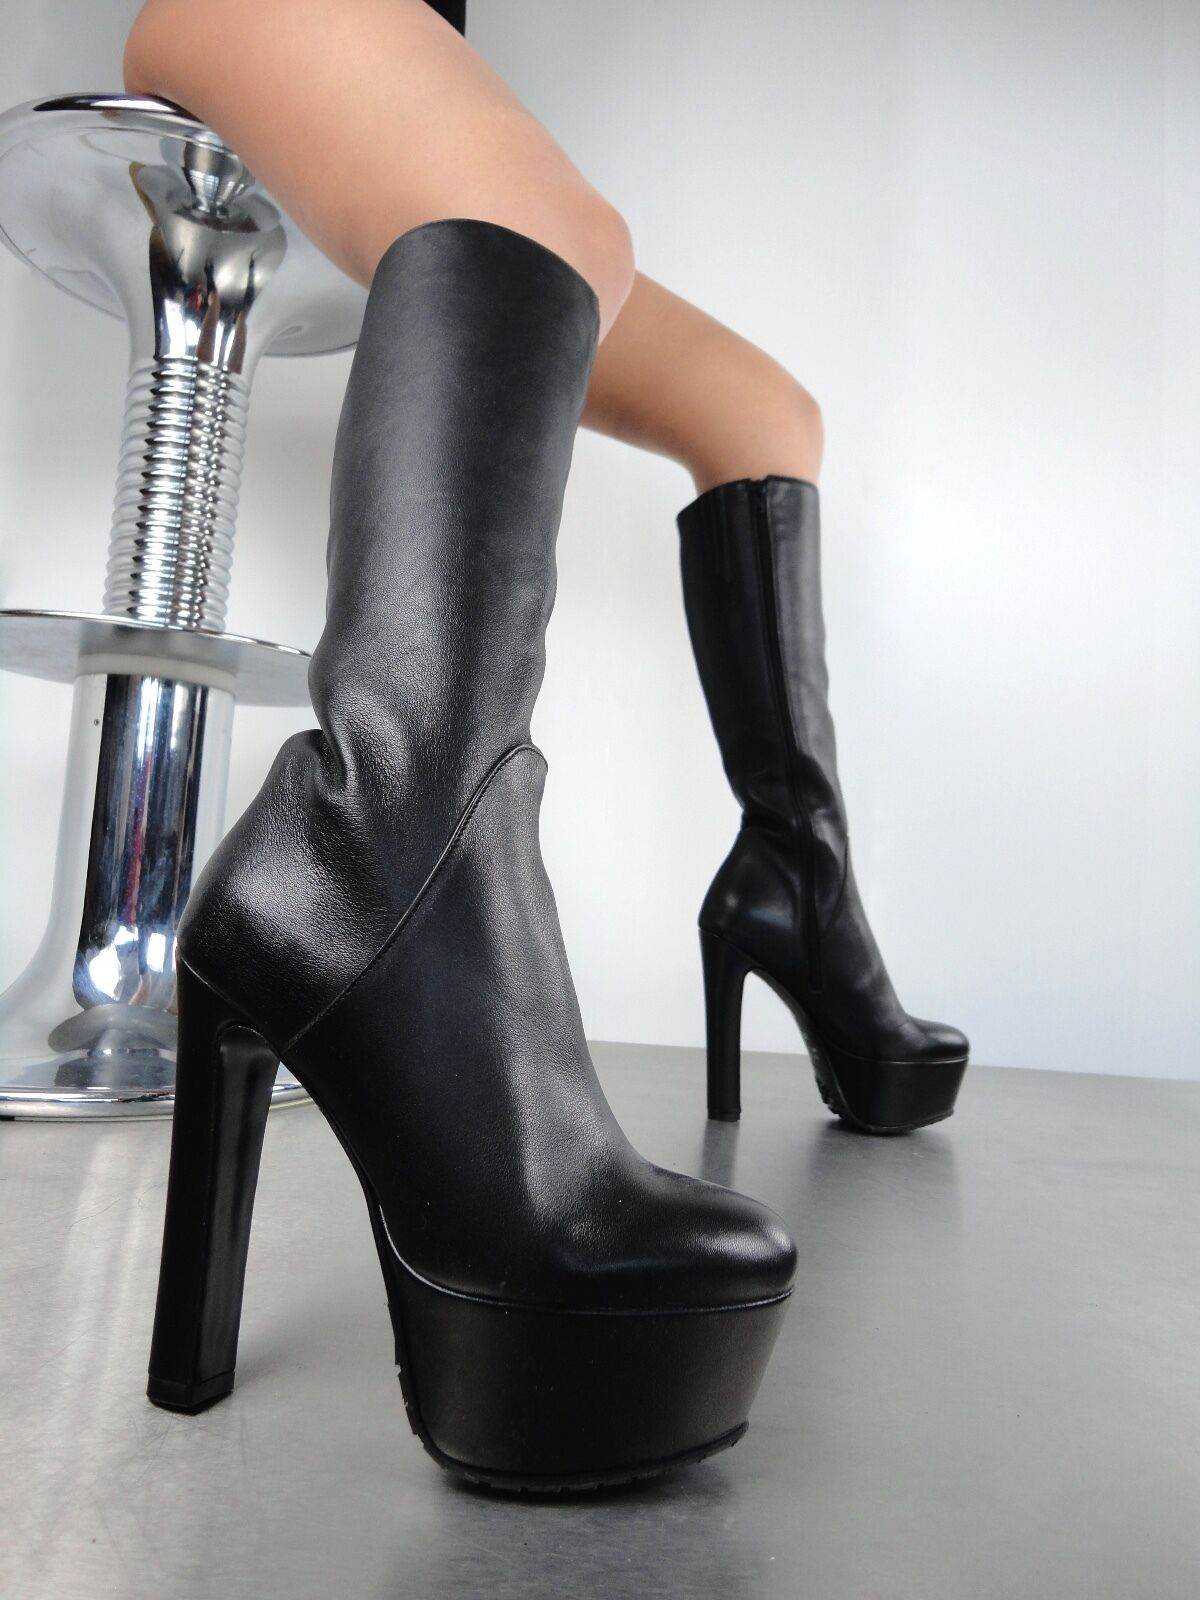 GIOHEL ITALY PLATFORM KNEE HIGH HEELS BOOTS STIEFEL STIVALI  PELLE GOMMA NERO 43